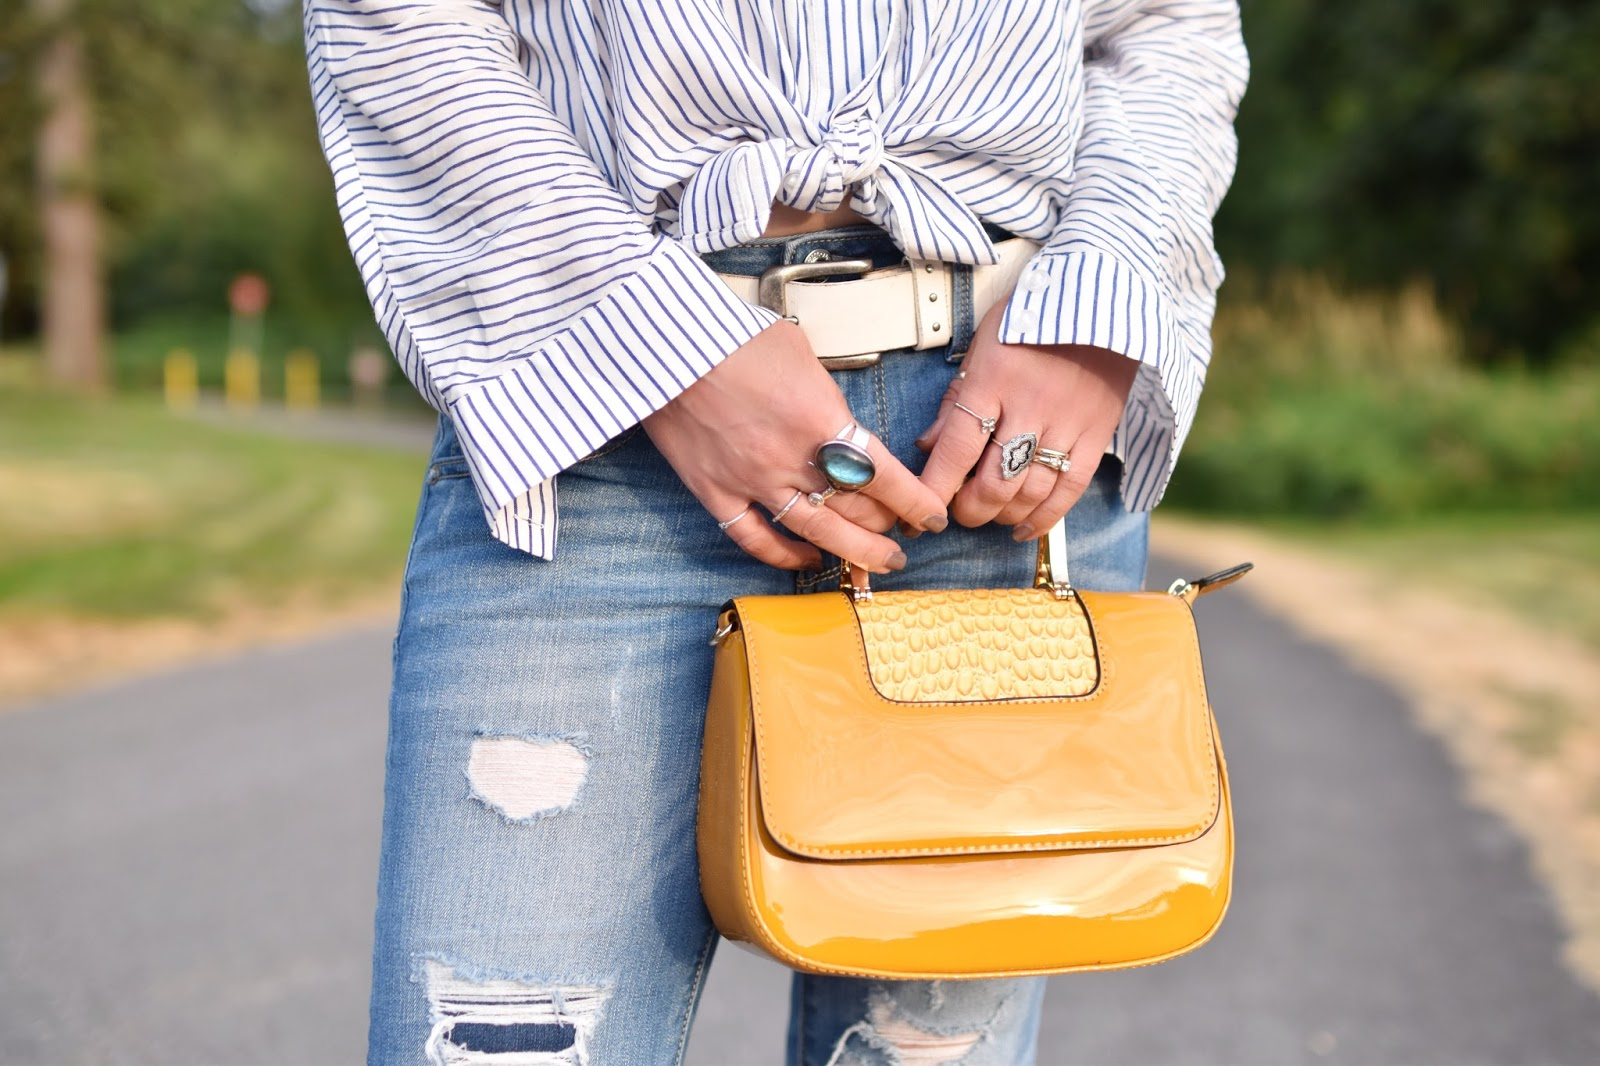 Monika Faulkner personal style inspiration - off-the-shoulder striped shirt, distressed cropped jeans, yellow patent mini-bag